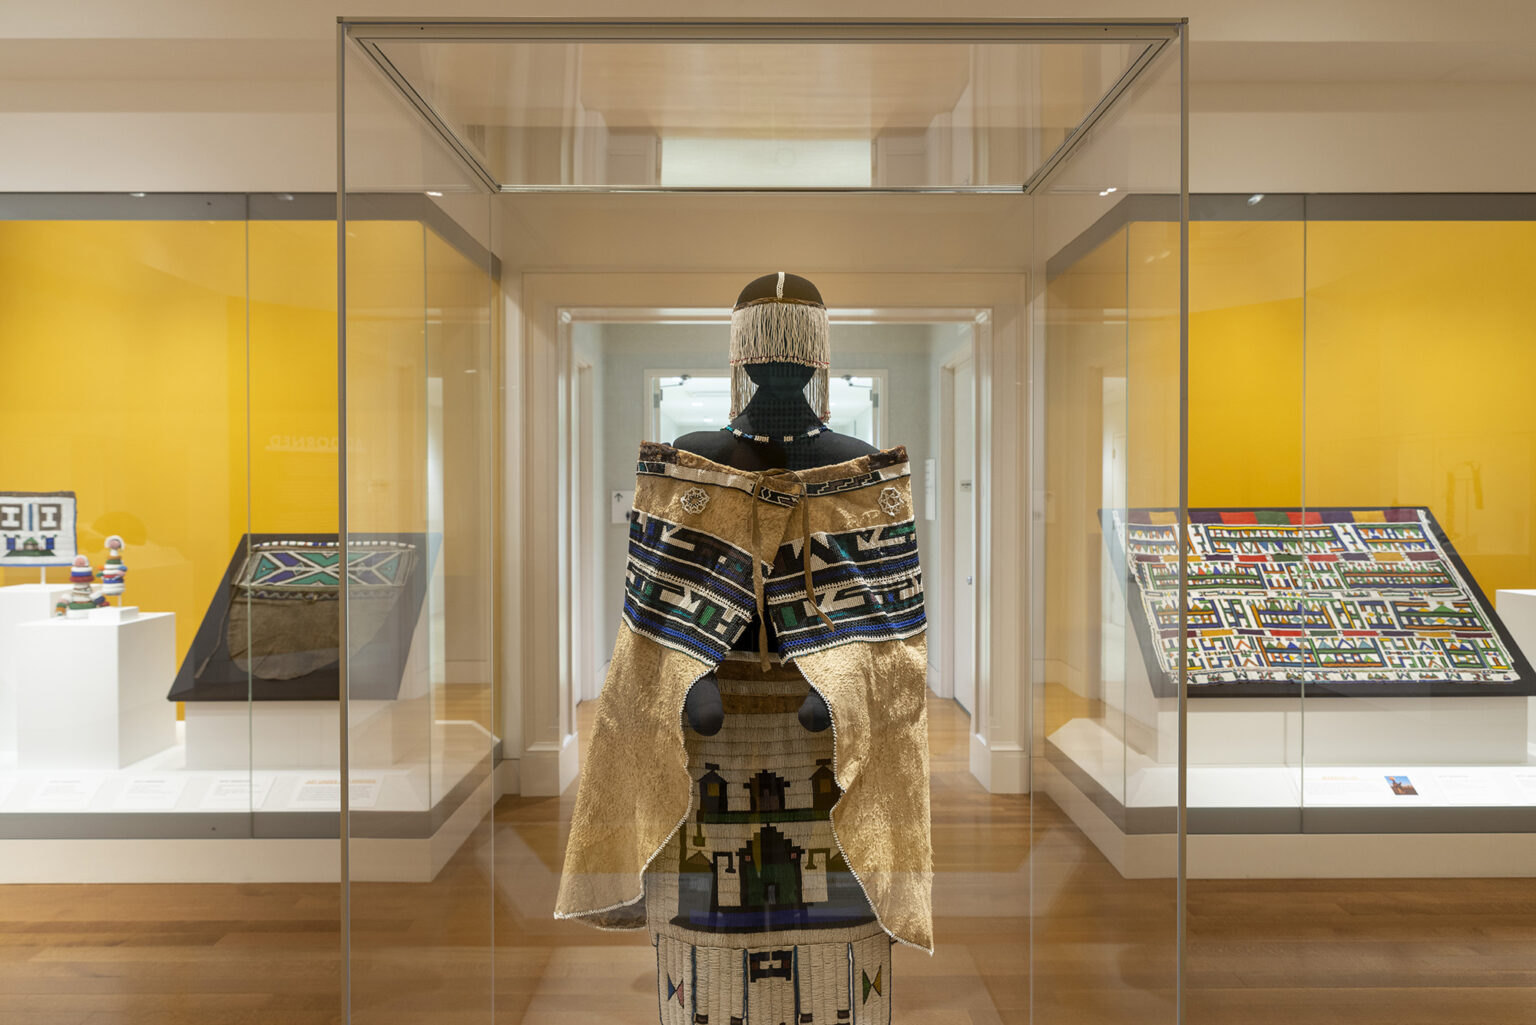 Image: Installation view, Adorned: African Women & the Art of Identity. Photo by Mitro Hood.